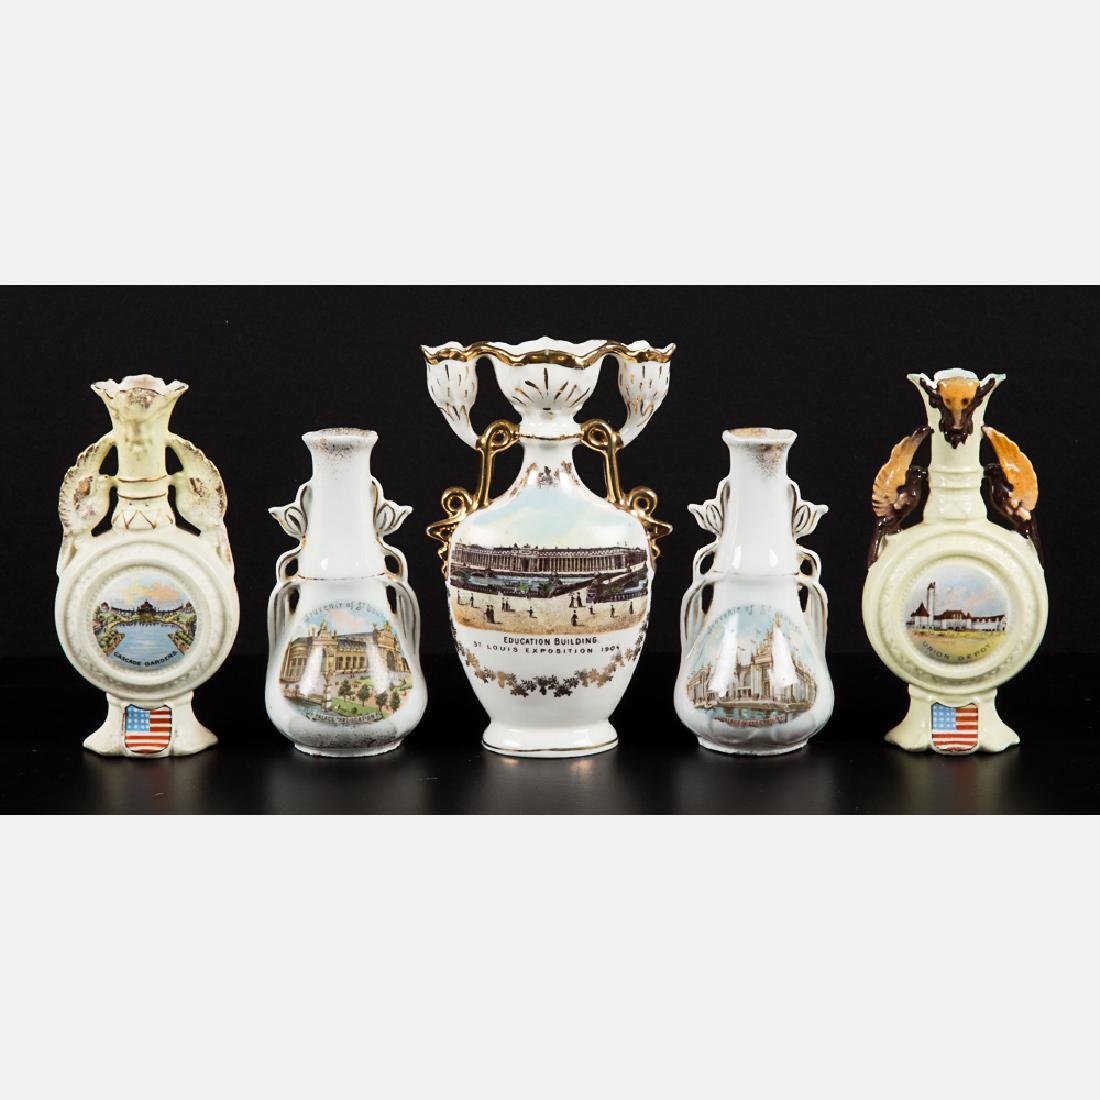 A Group of Five Diminutive Porcelain Vases by Various